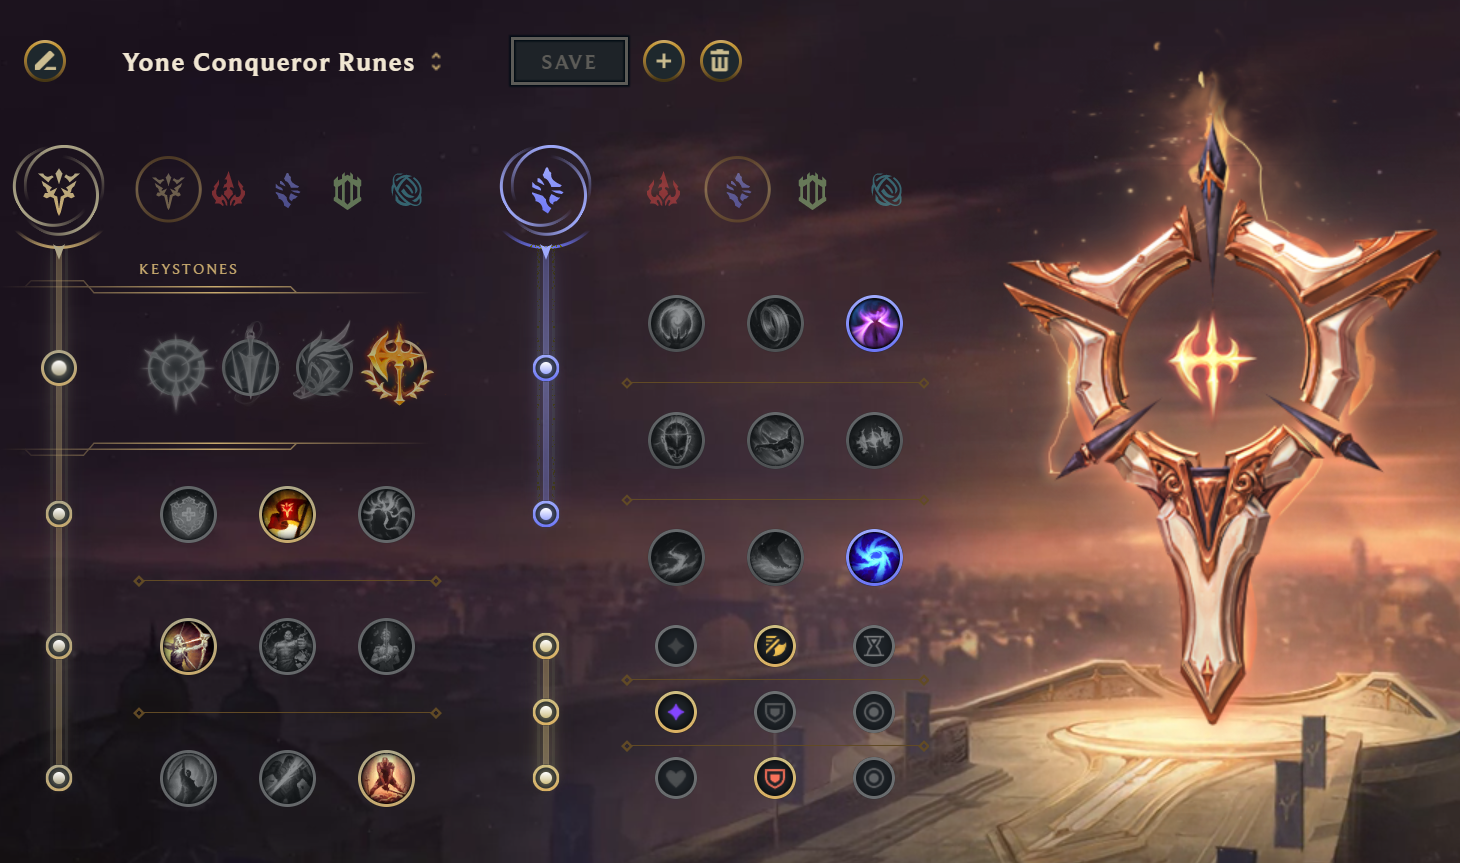 Conqueror Rune Page for Yone in League of Legends